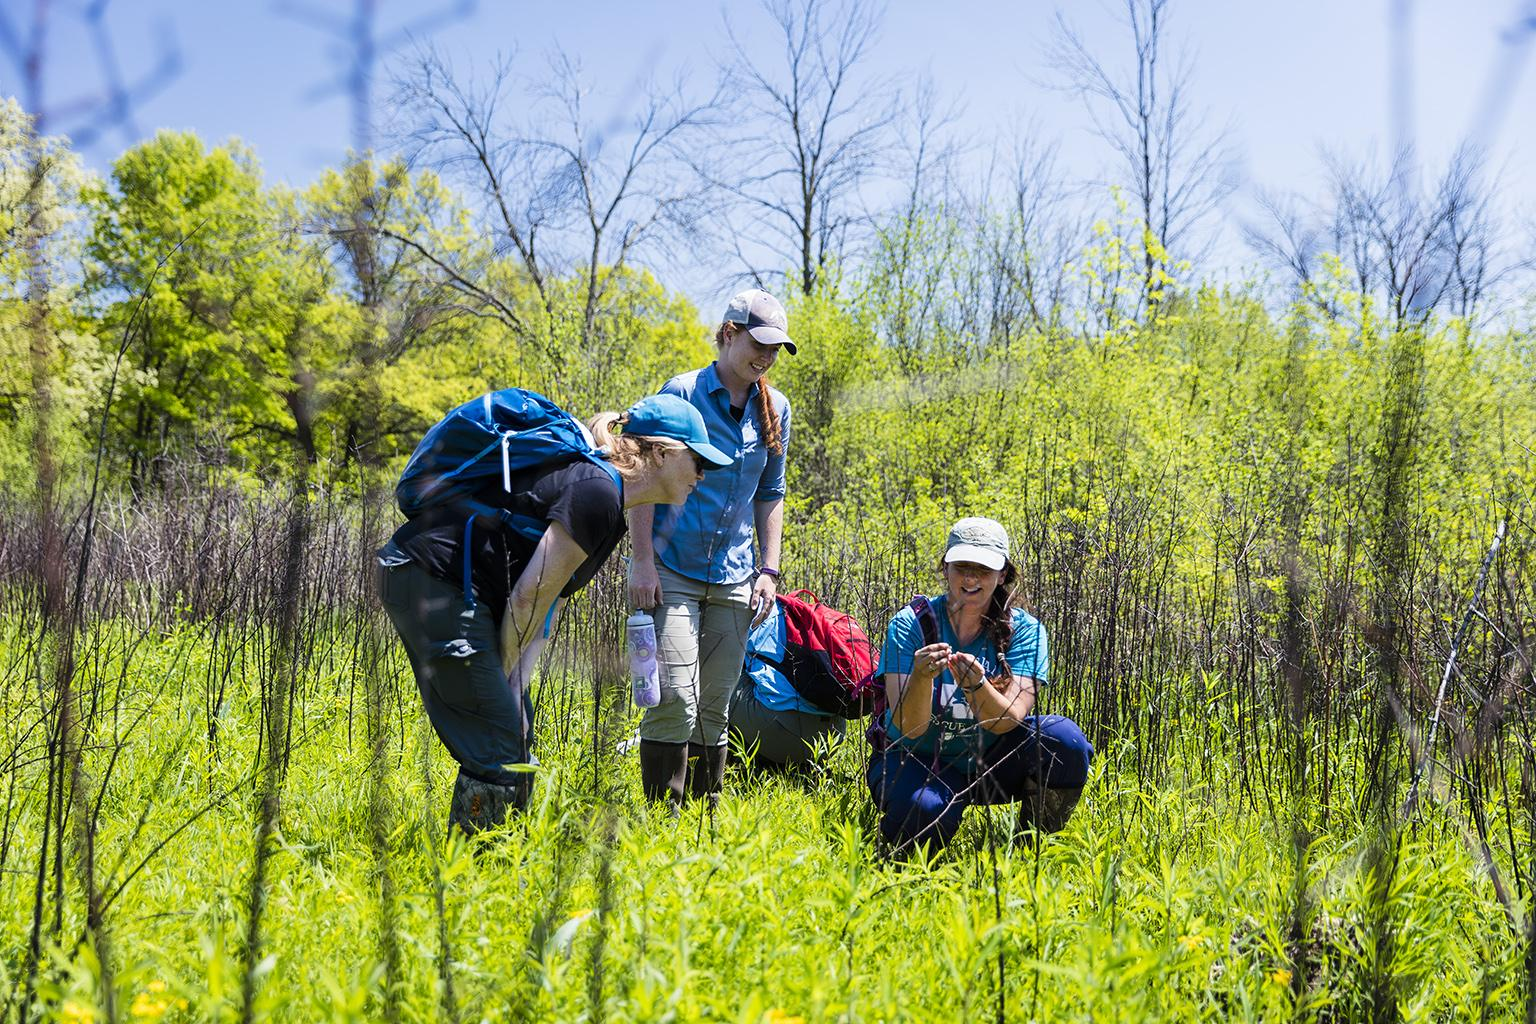 Staff from the Peggy Notebaert Nature Museum conduct field work. (Courtesy Peggy Notebaert Nature Museum)